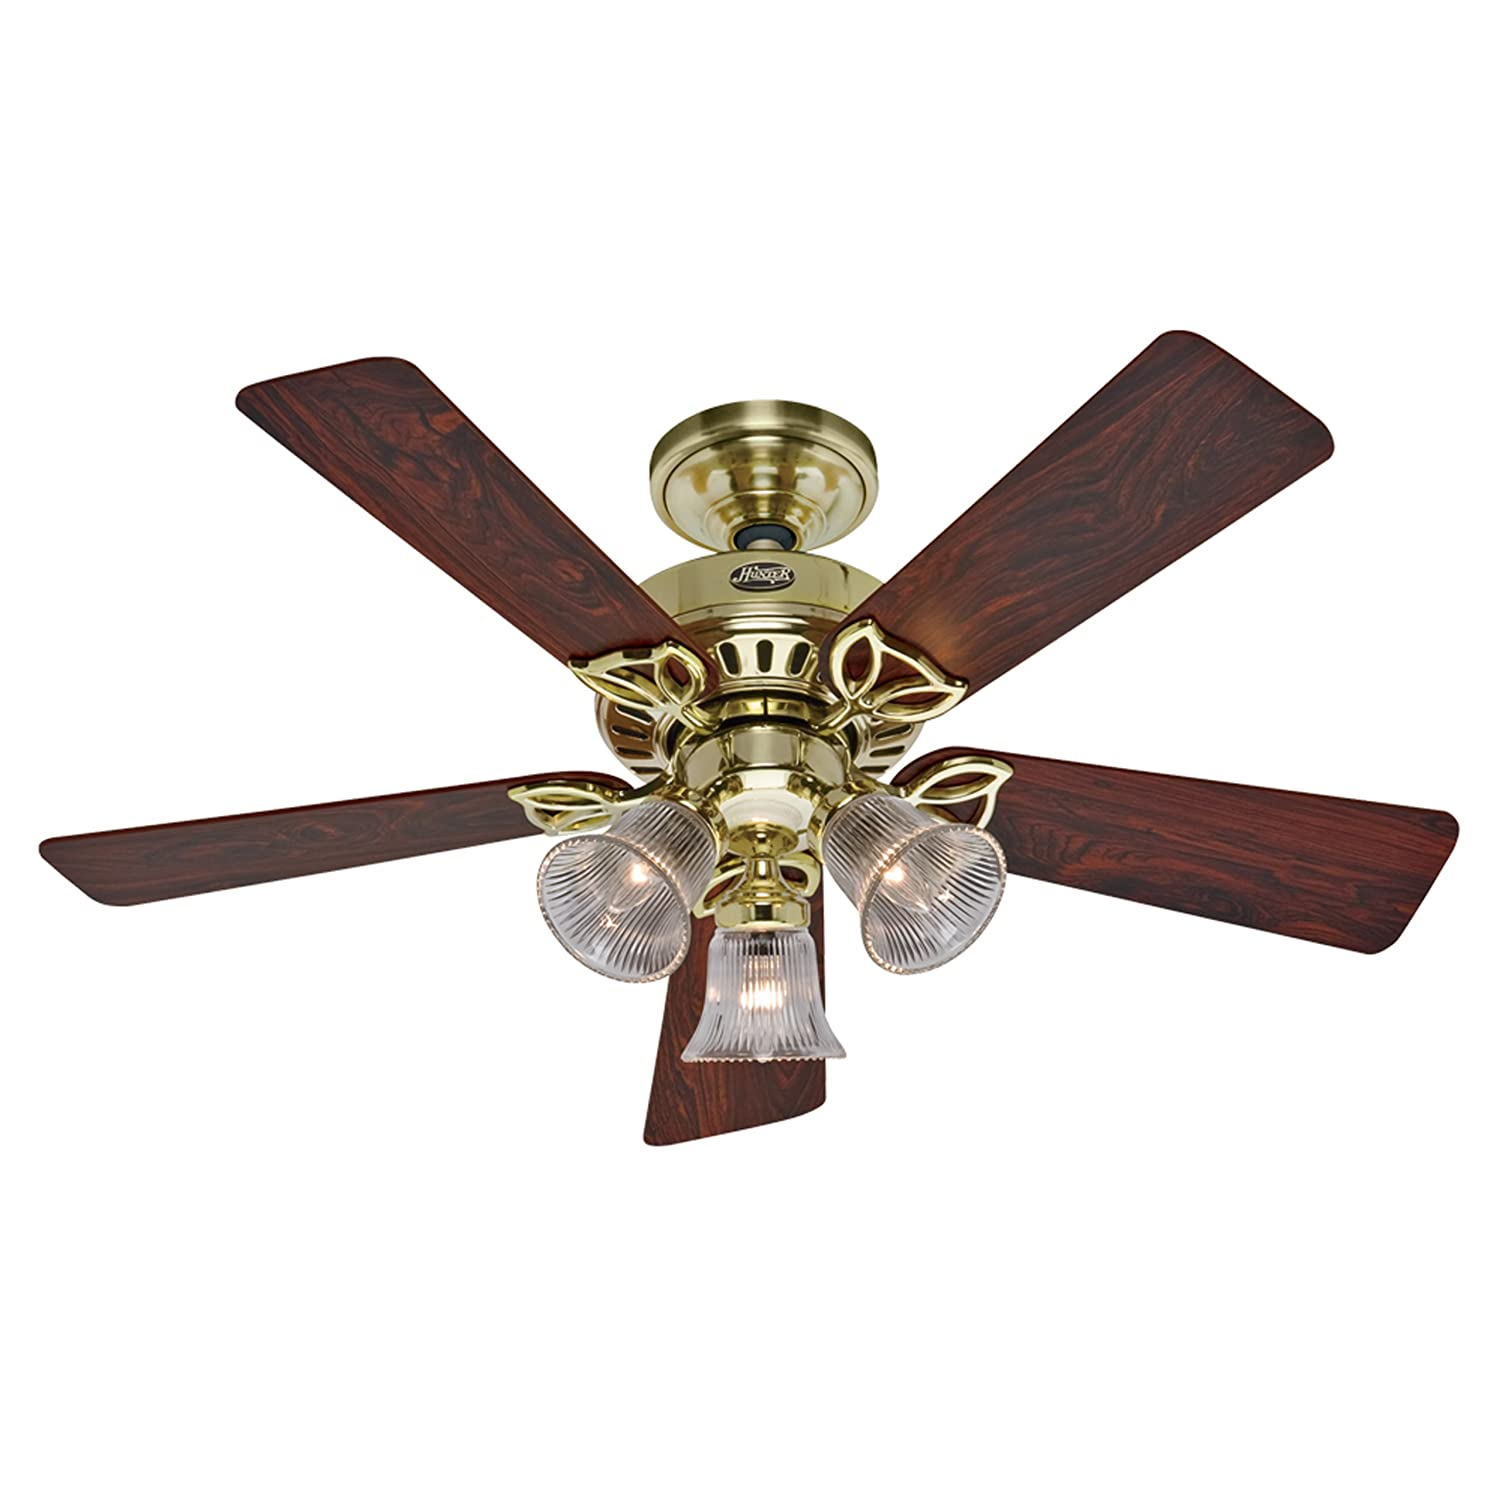 ceiling fan fans hd hunter youtube watch allendale remake